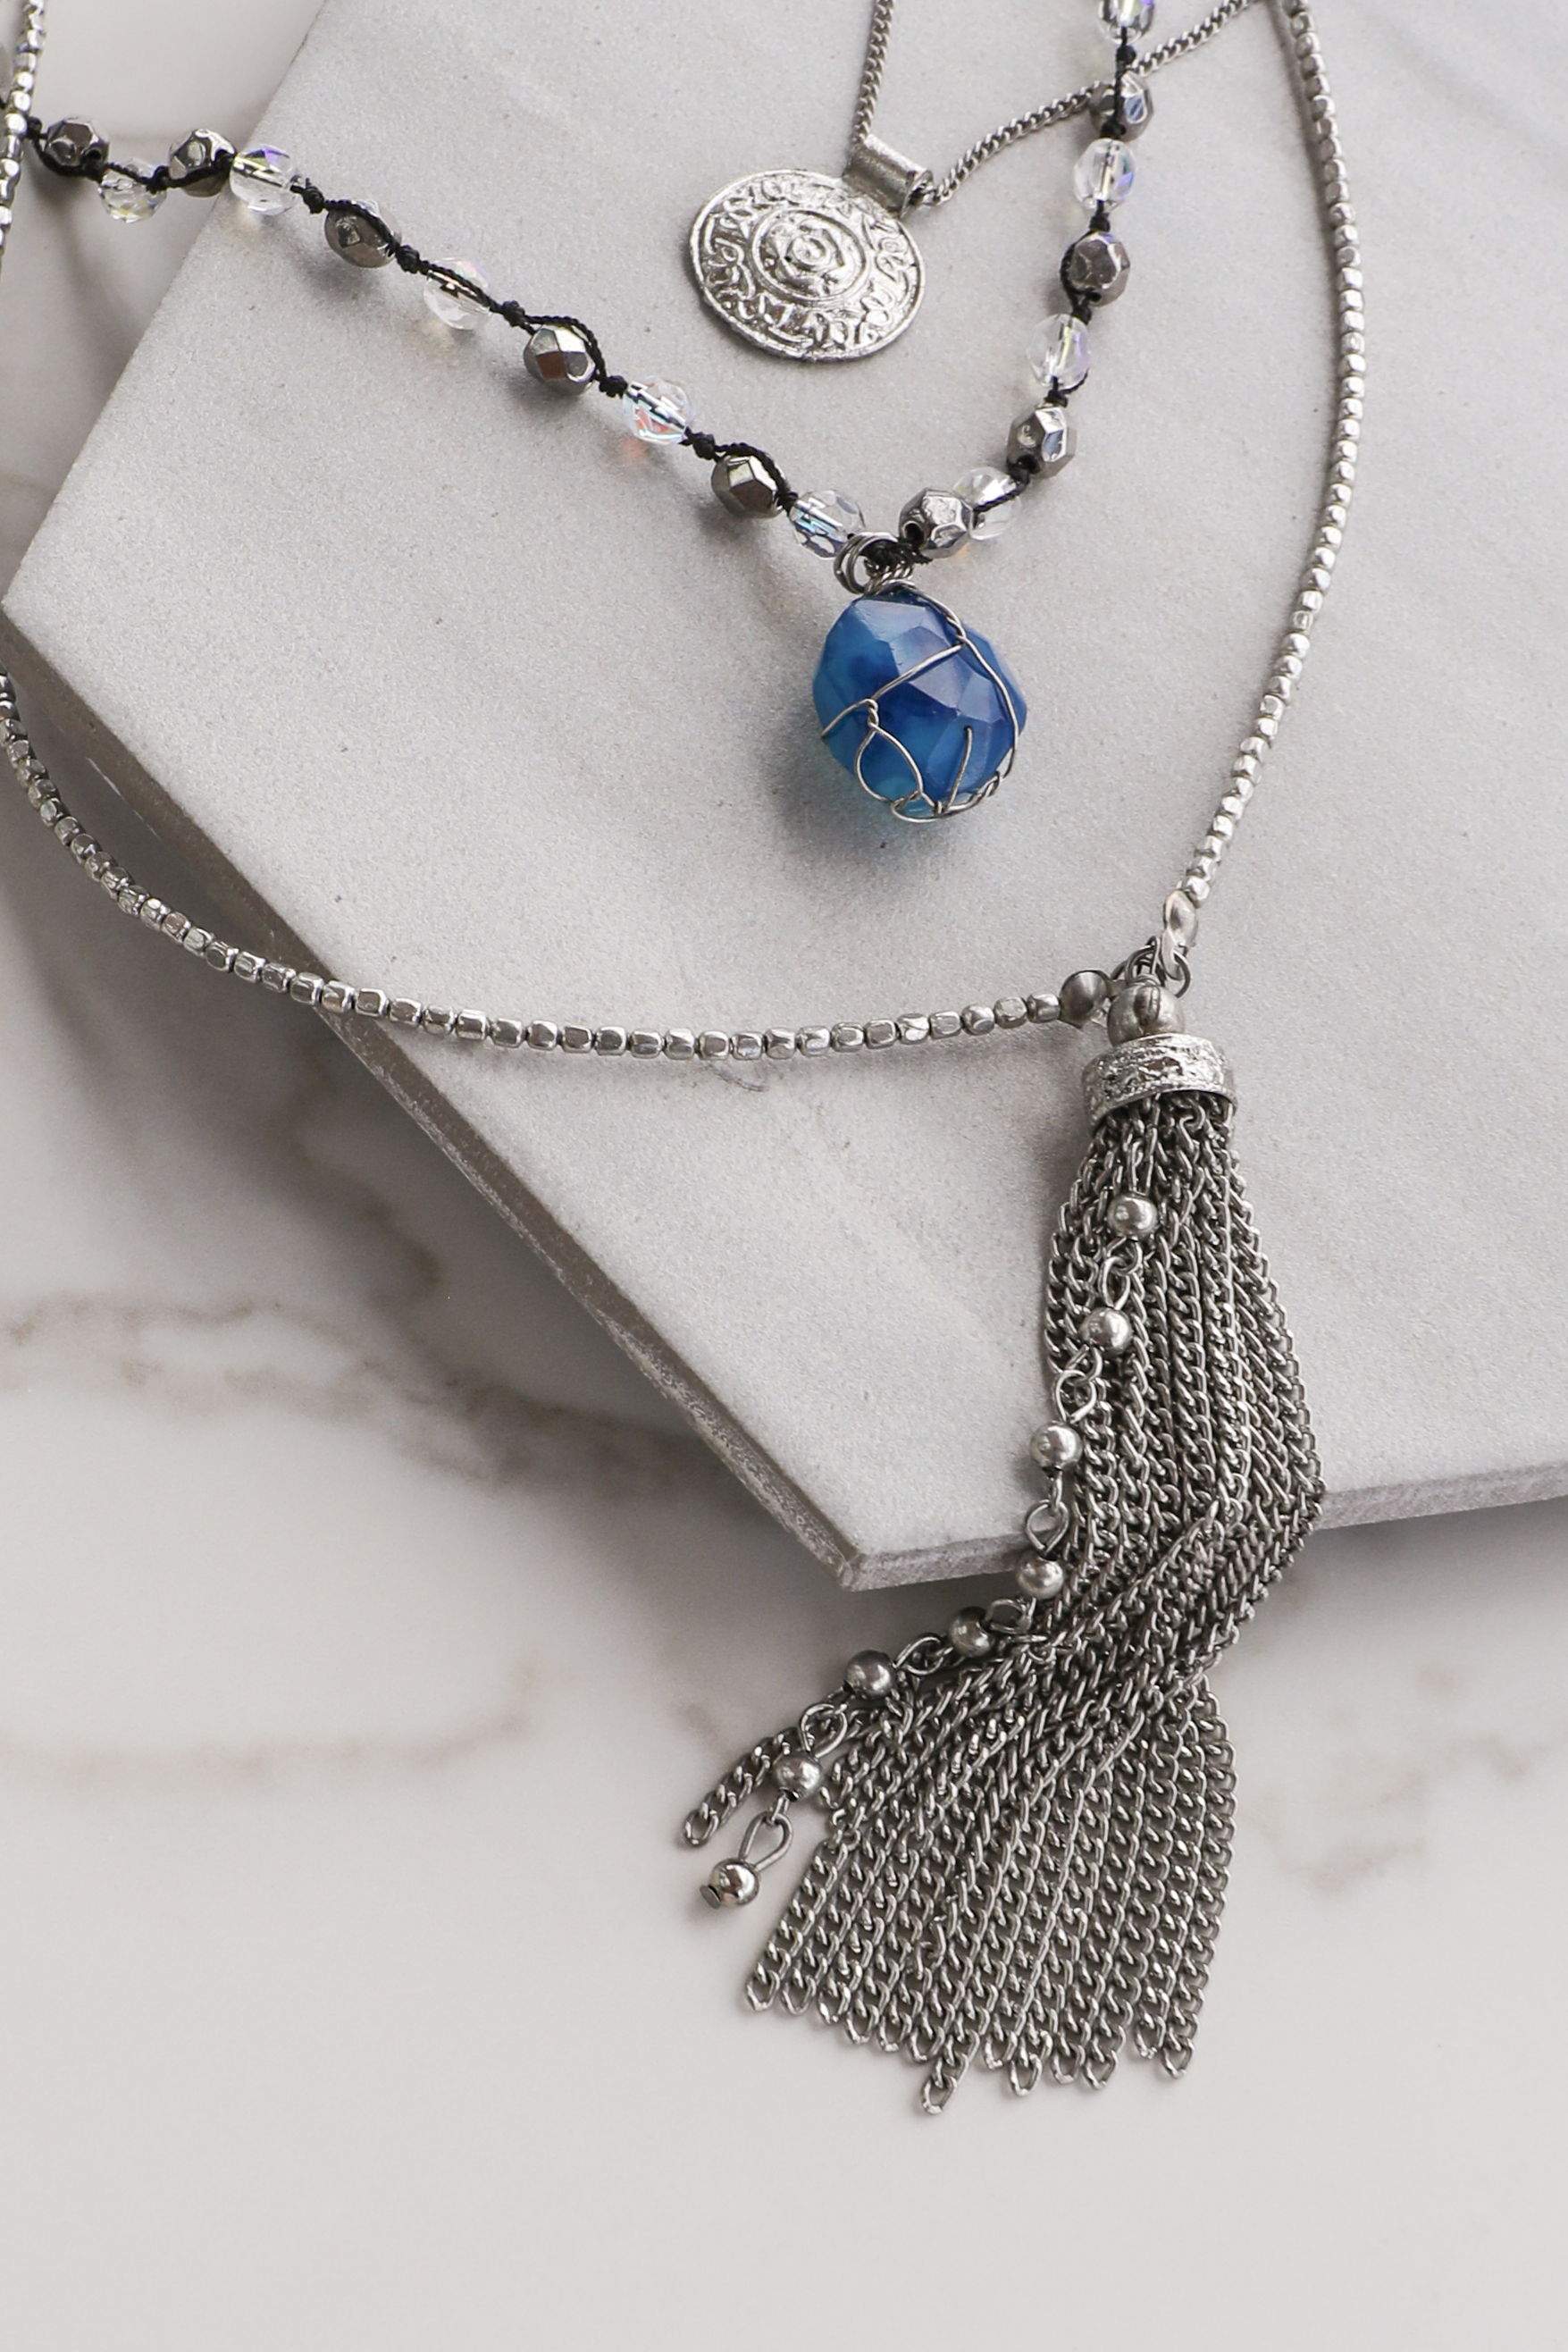 Antique Silver Necklace with Stone and Tassel Pendants